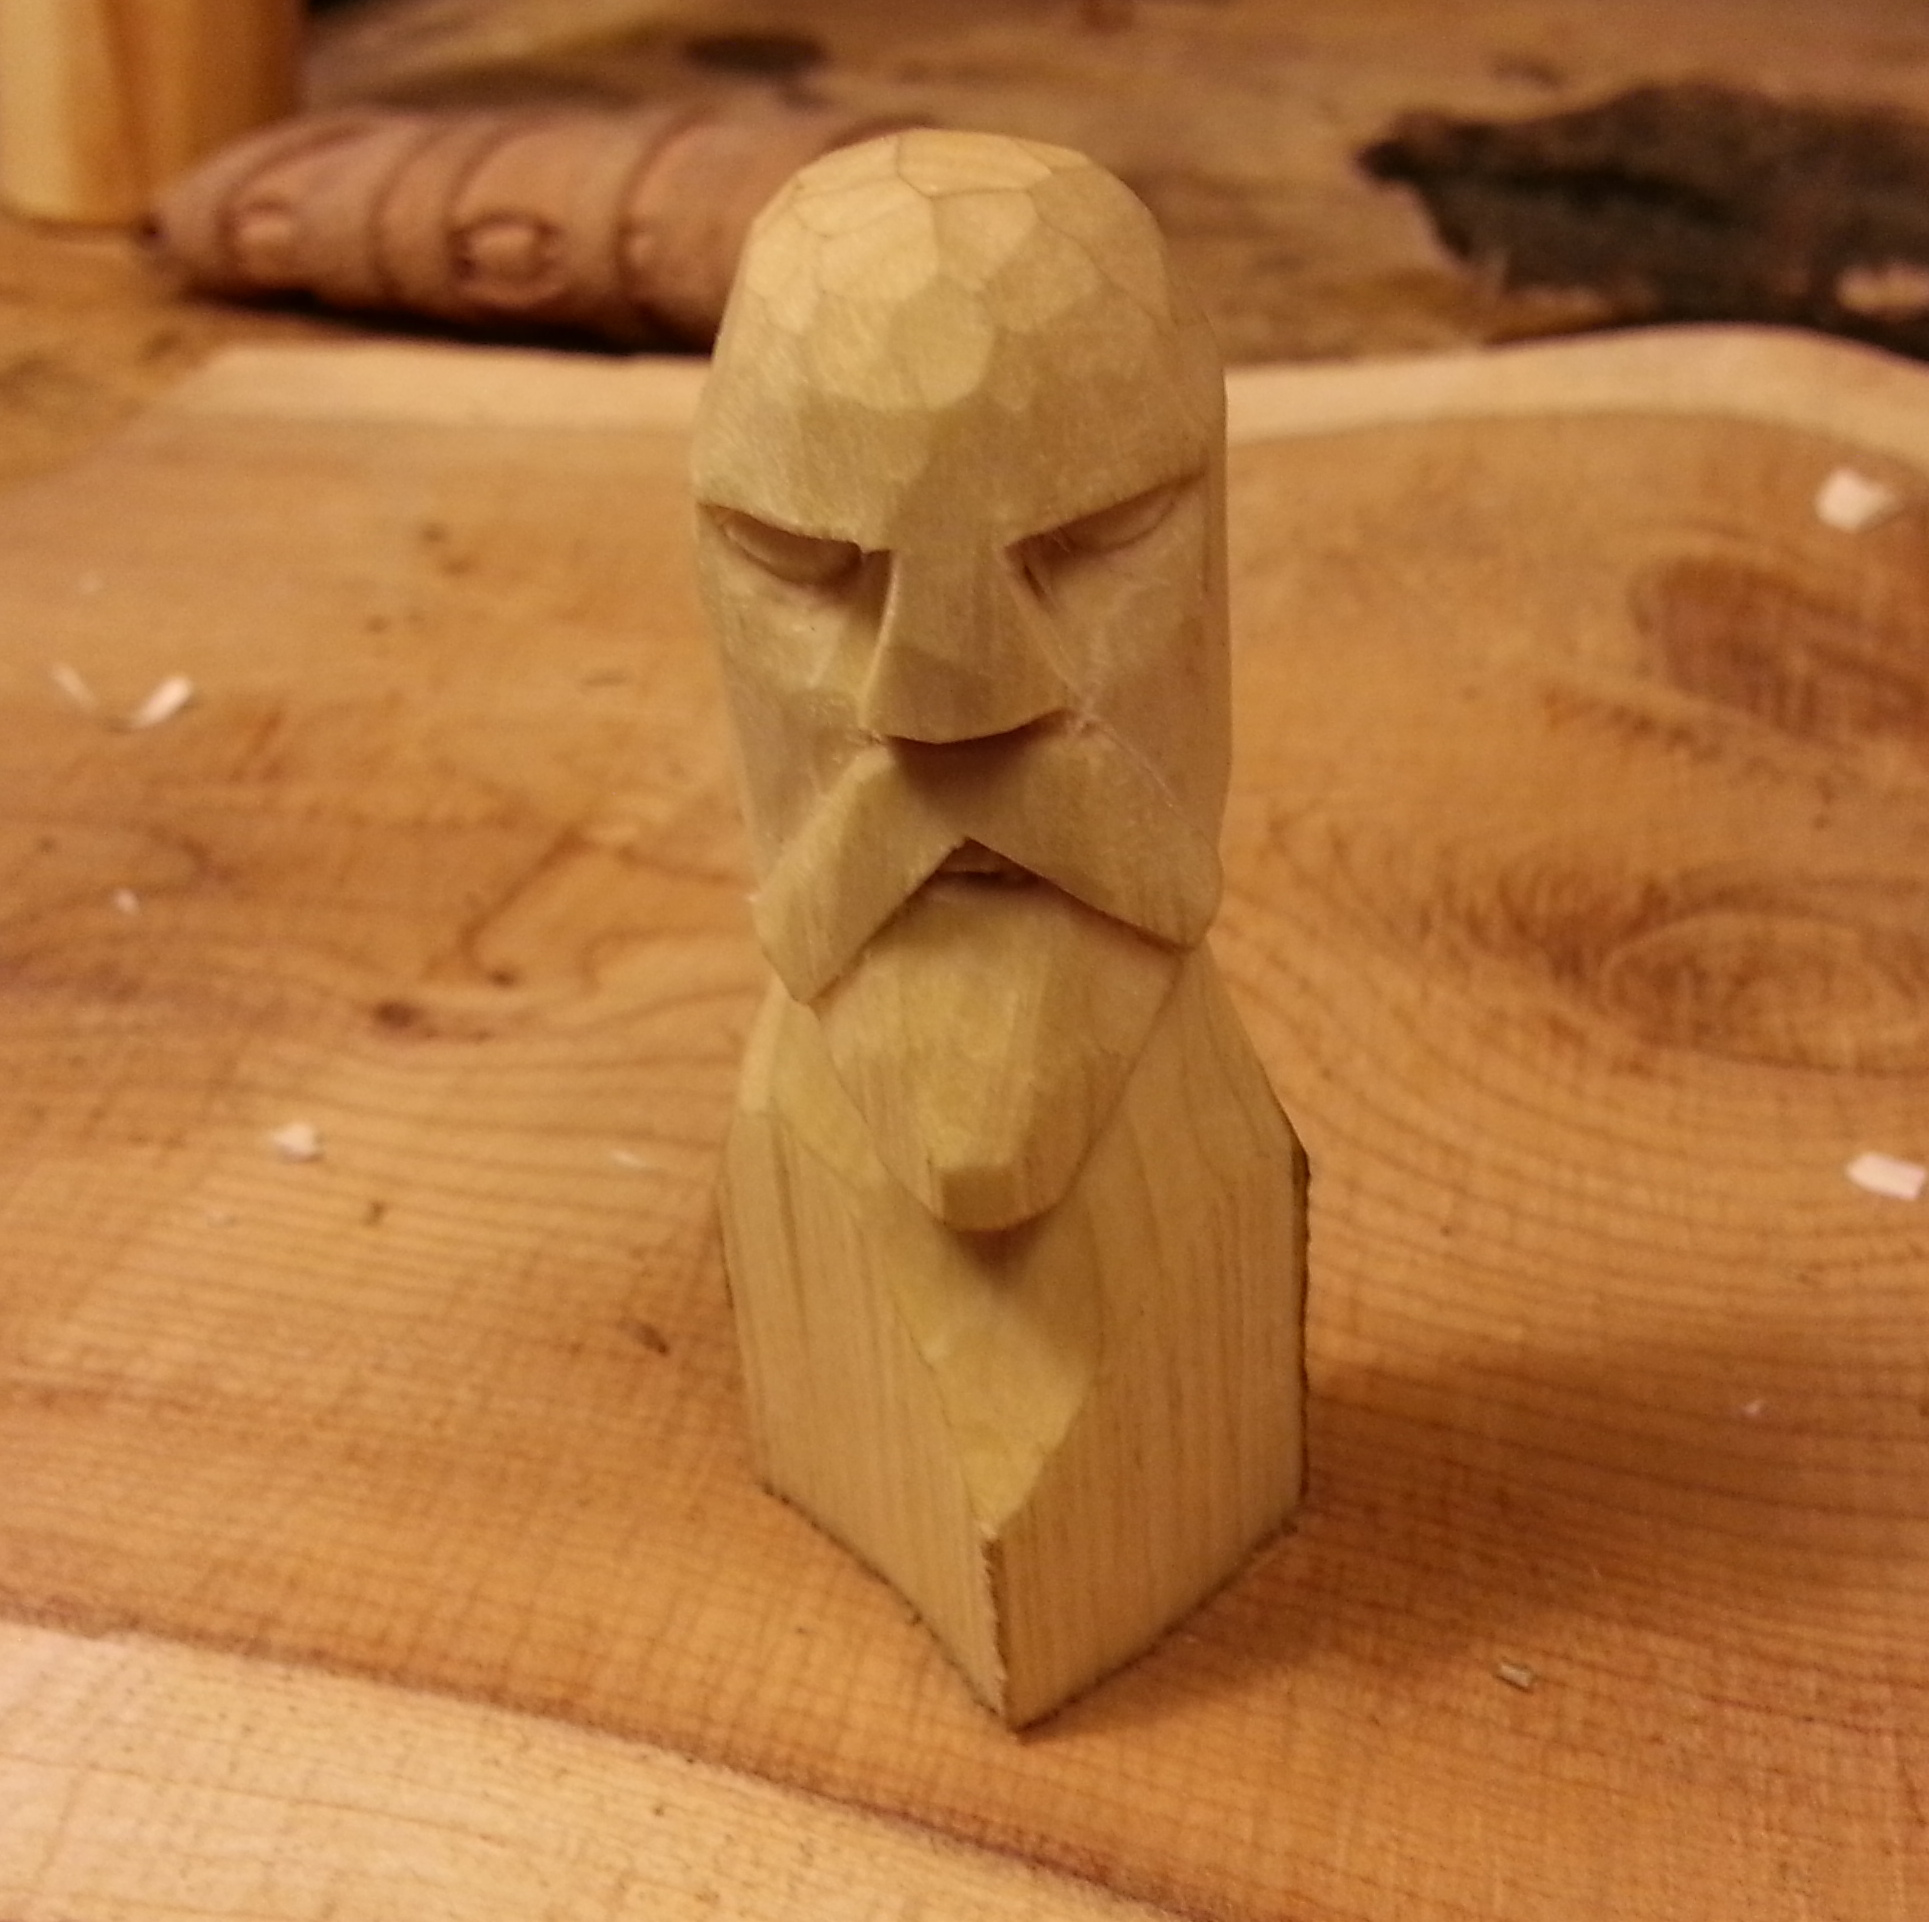 Hand Carved Wooden Sculpture Sufficient Supply Gifts Keepsakes, Memory Books